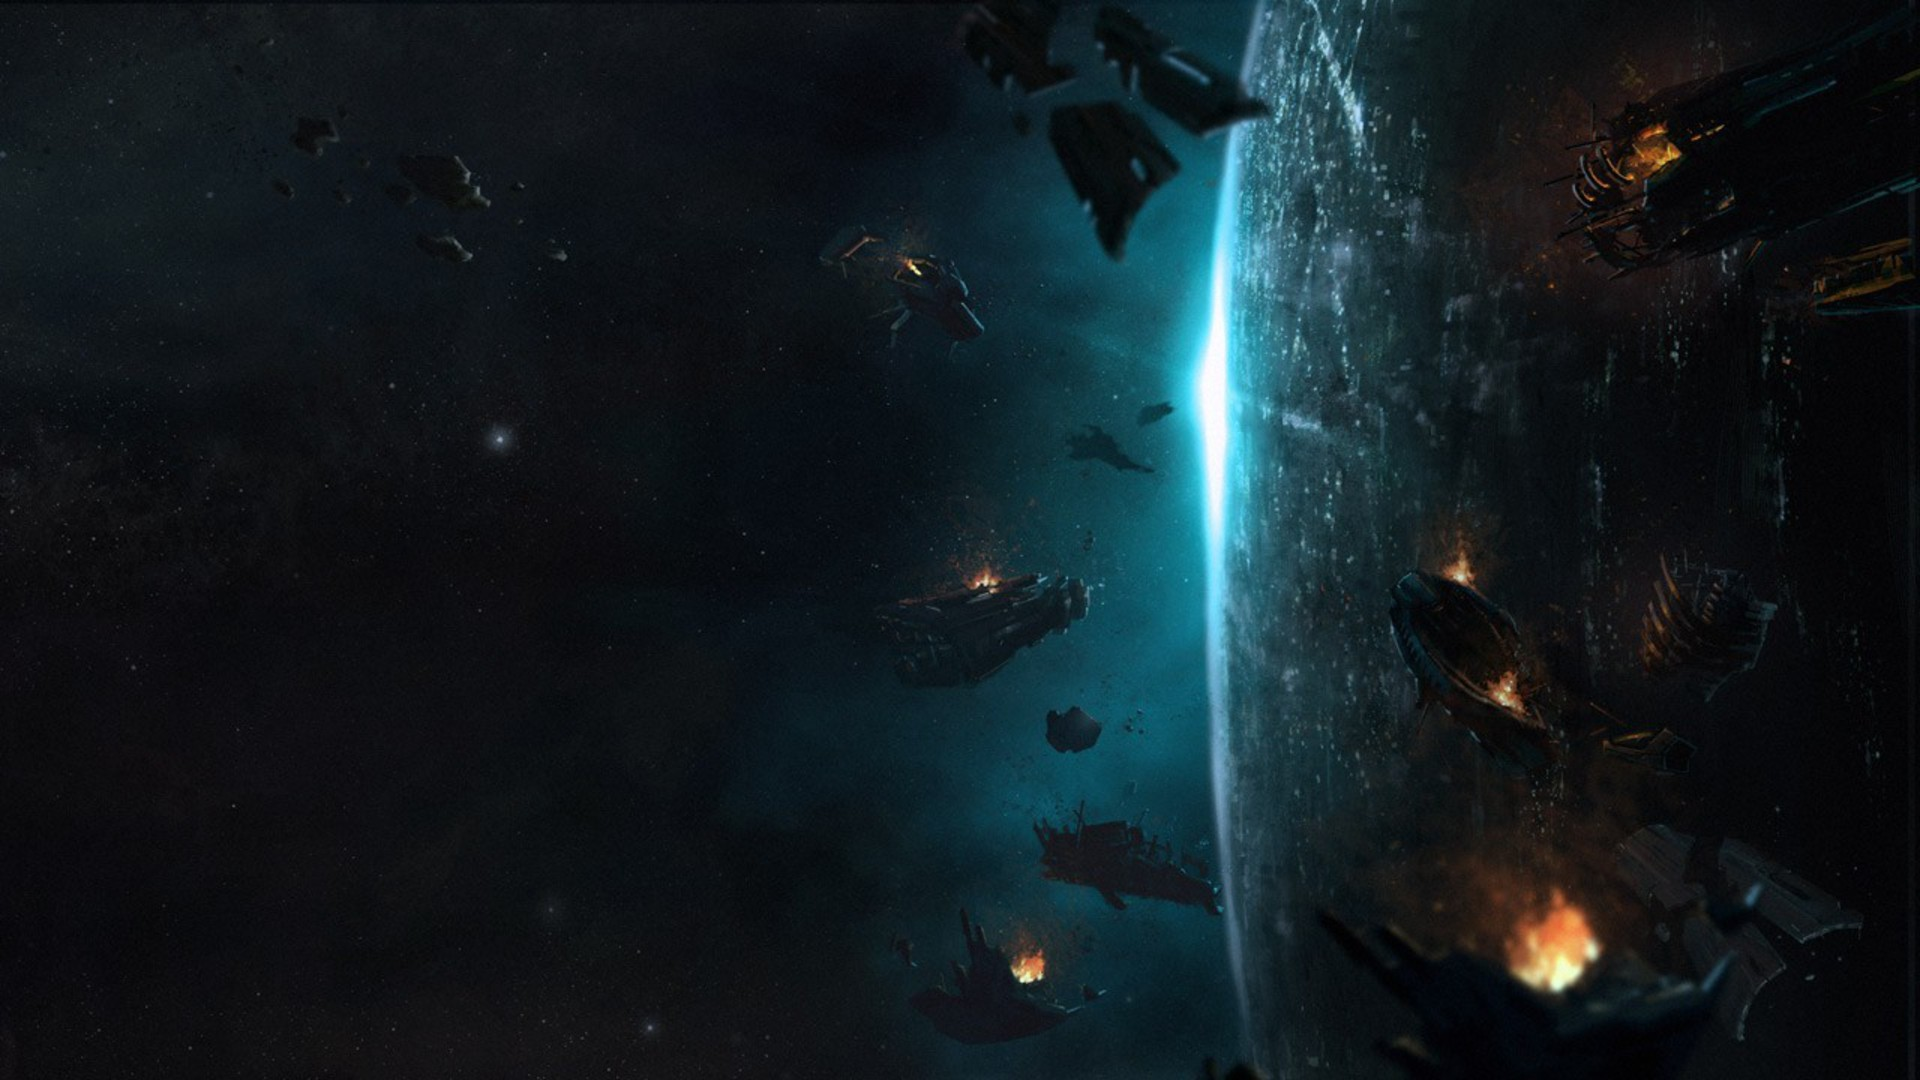 Planets halo concept art science fiction 4 wallpaper ...